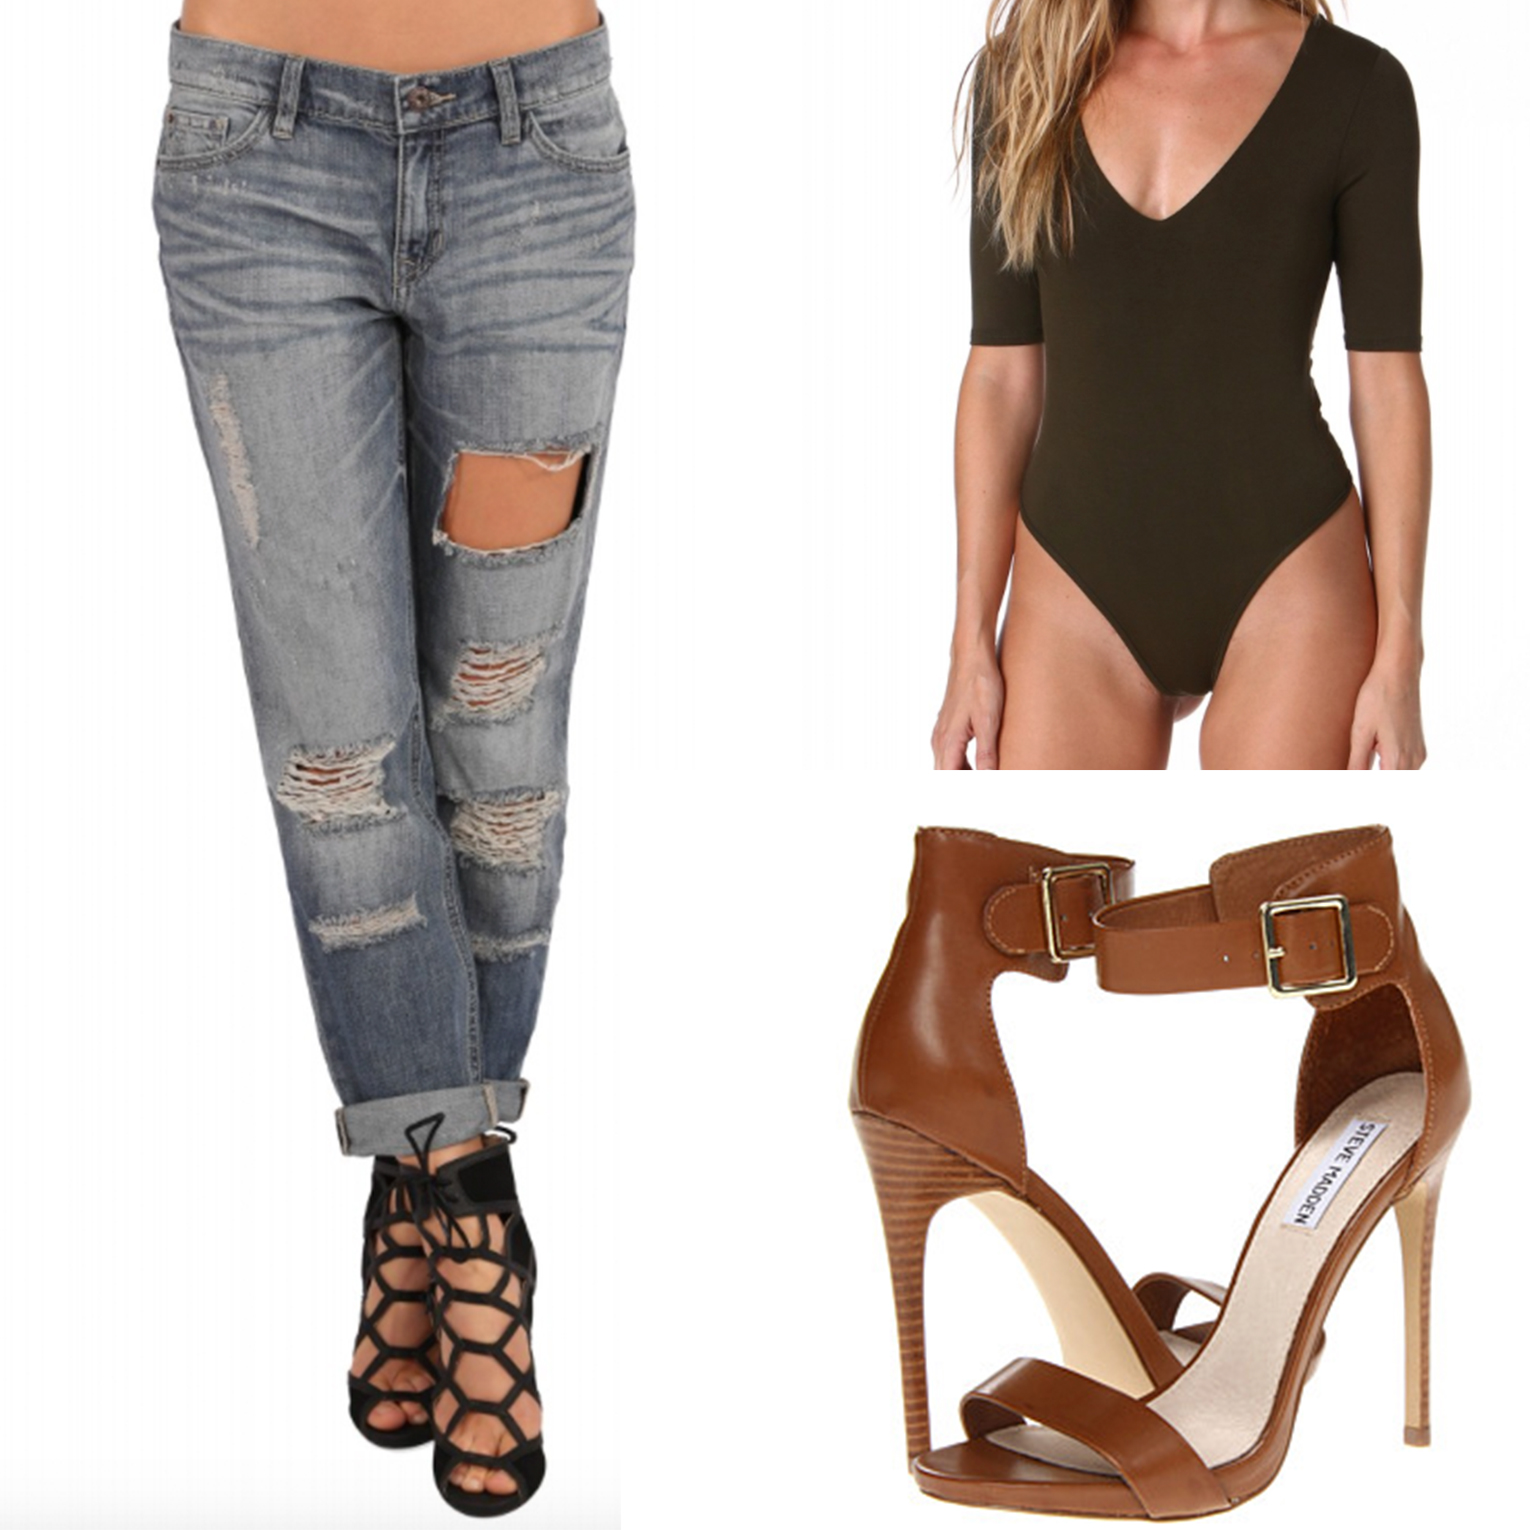 Denim:  Necessary Clothing  Body Suit:  Here  Shoes:  Steve Madden Marlene